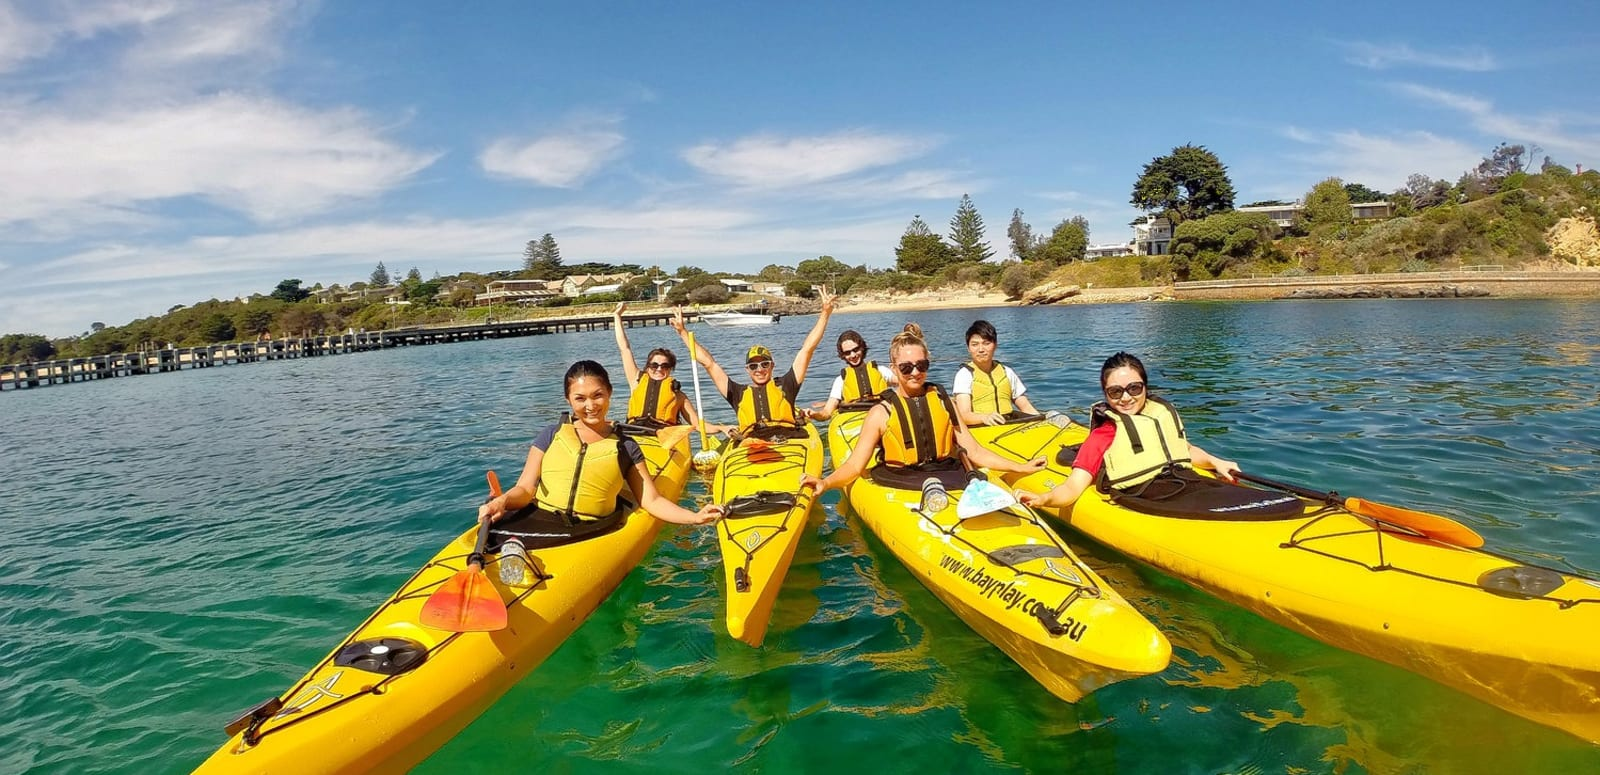 Why Not Go on a Singles Only Kayaking Tour